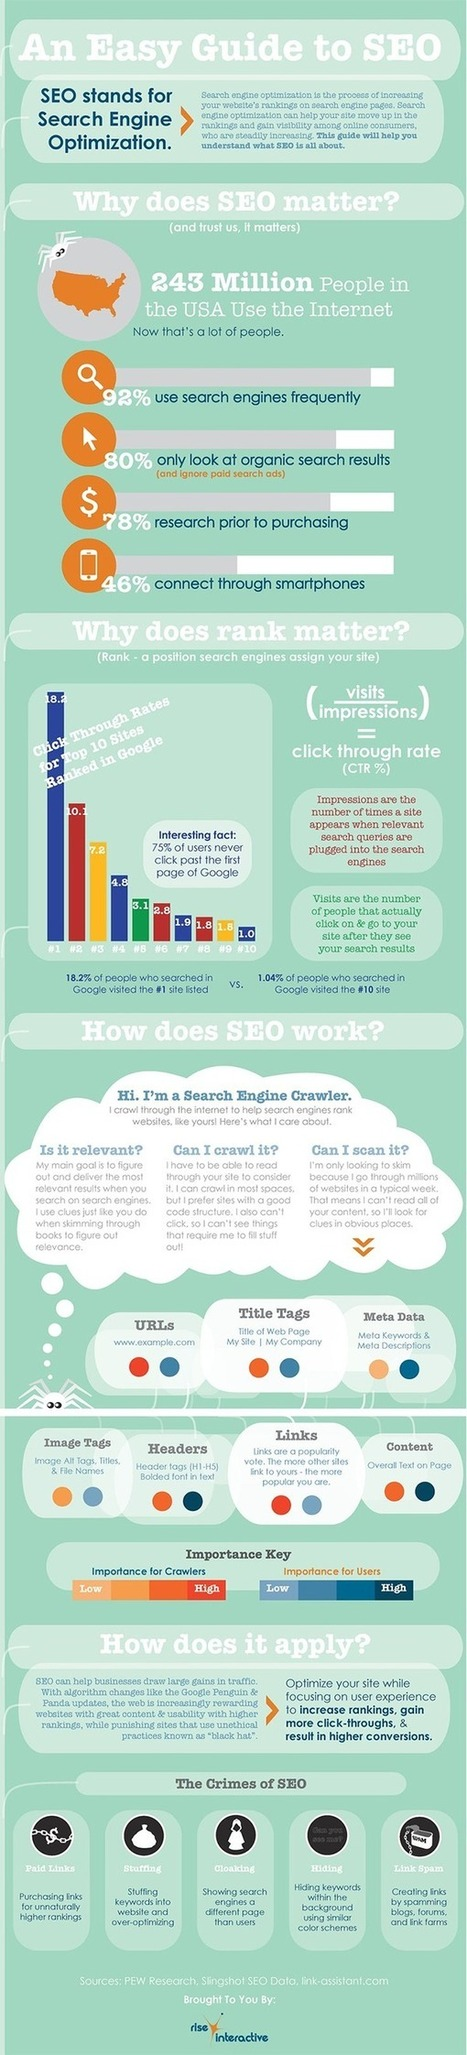 SEO, Simplified: What it Is, Why it Matters & How it Works | JOIN SCOOP.IT AND FOLLOW ME ON SCOOP.IT | Scoop.it